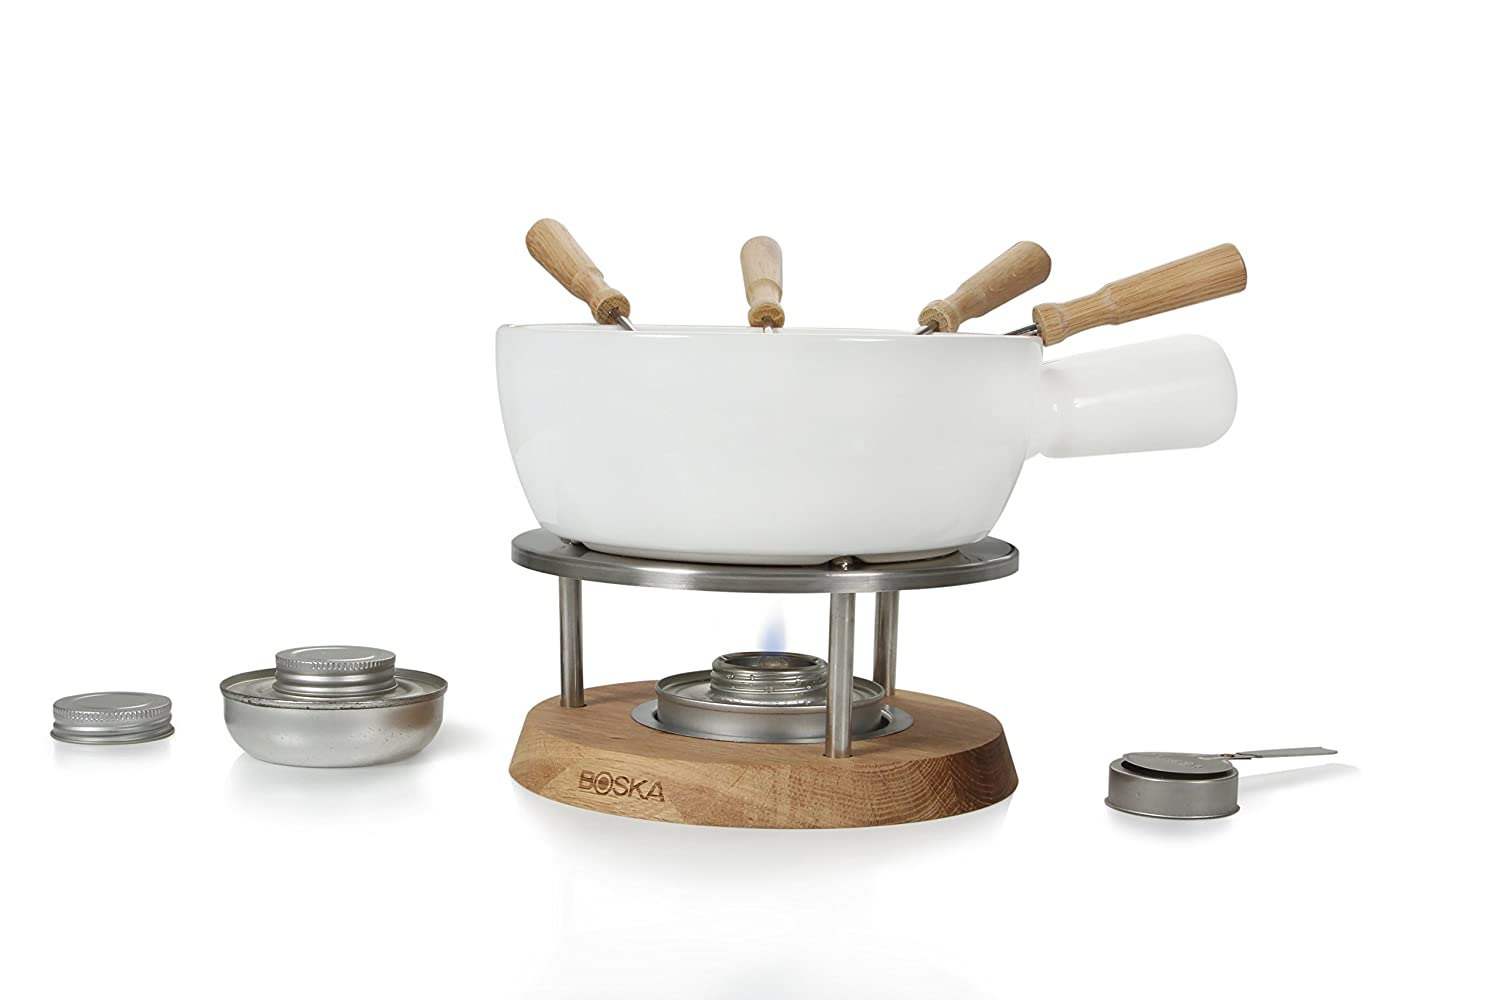 Boska Fondue Set Bianco with Fondue Burners Boska Holland